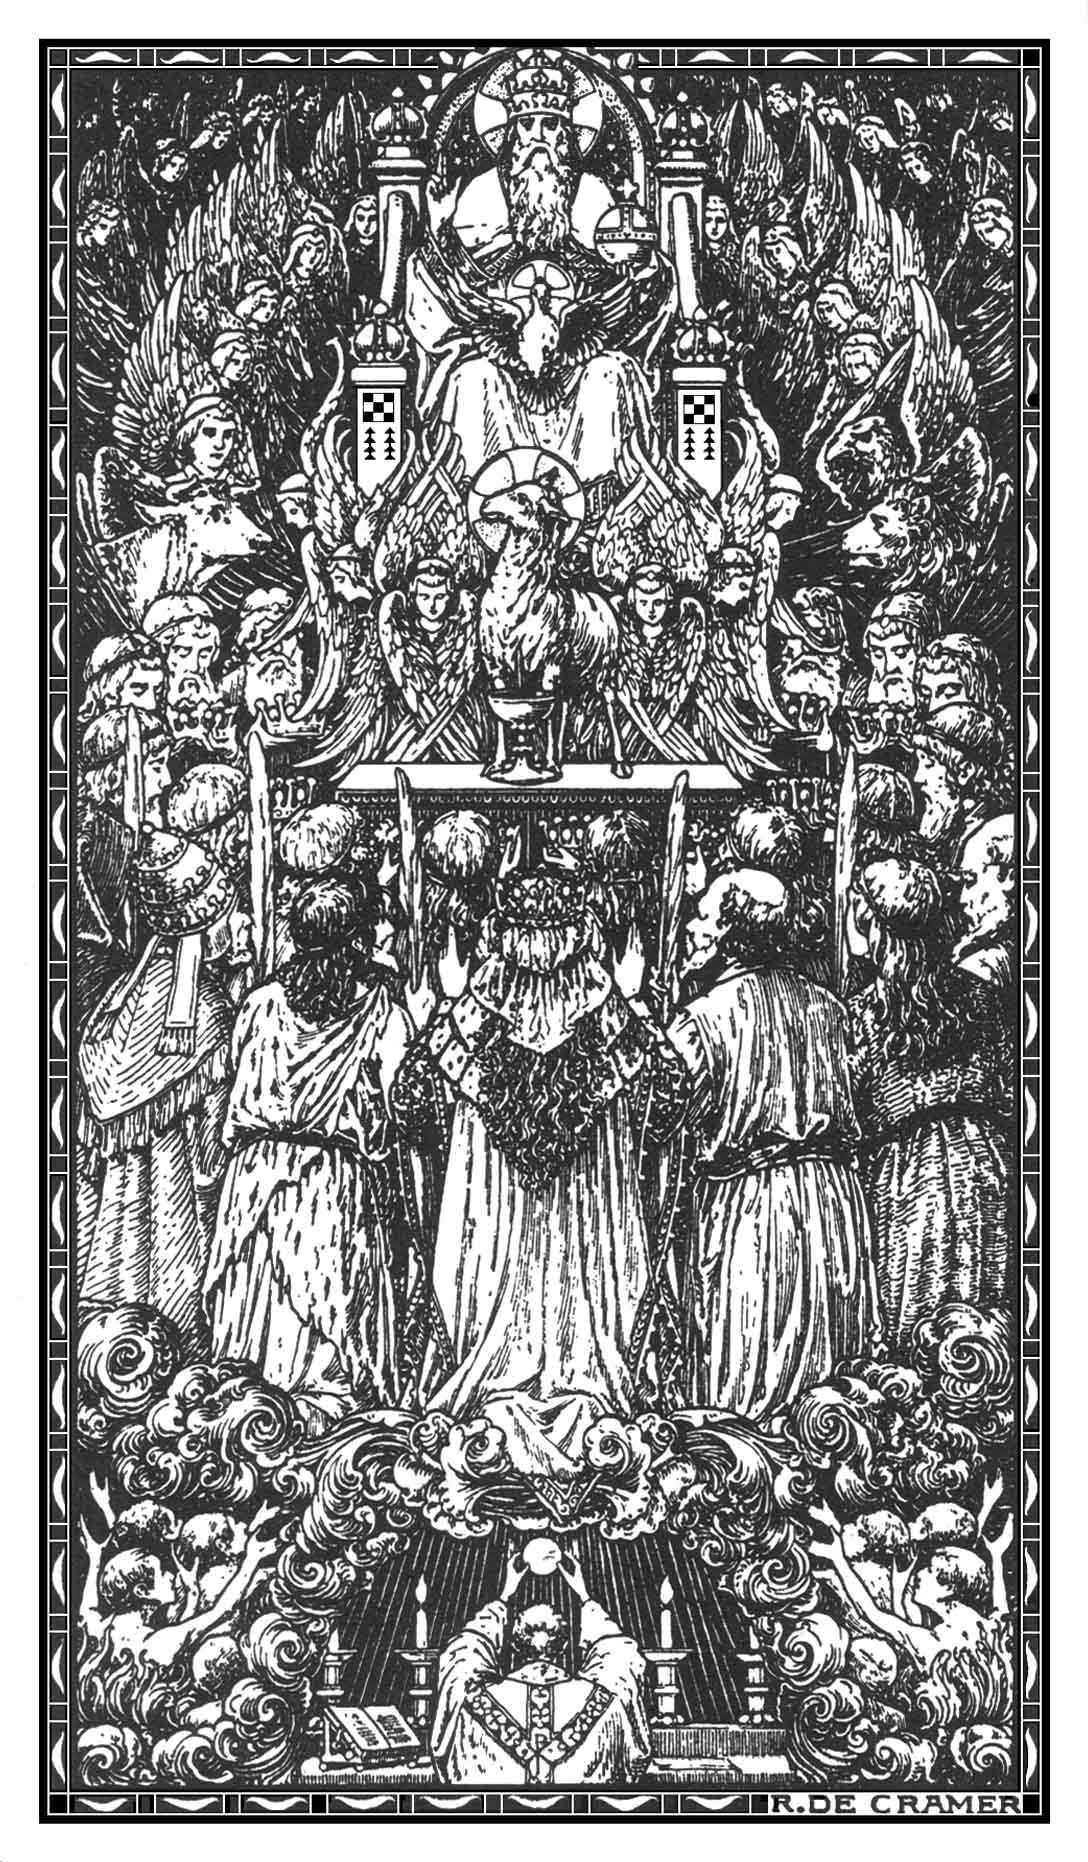 The Holy Mass3